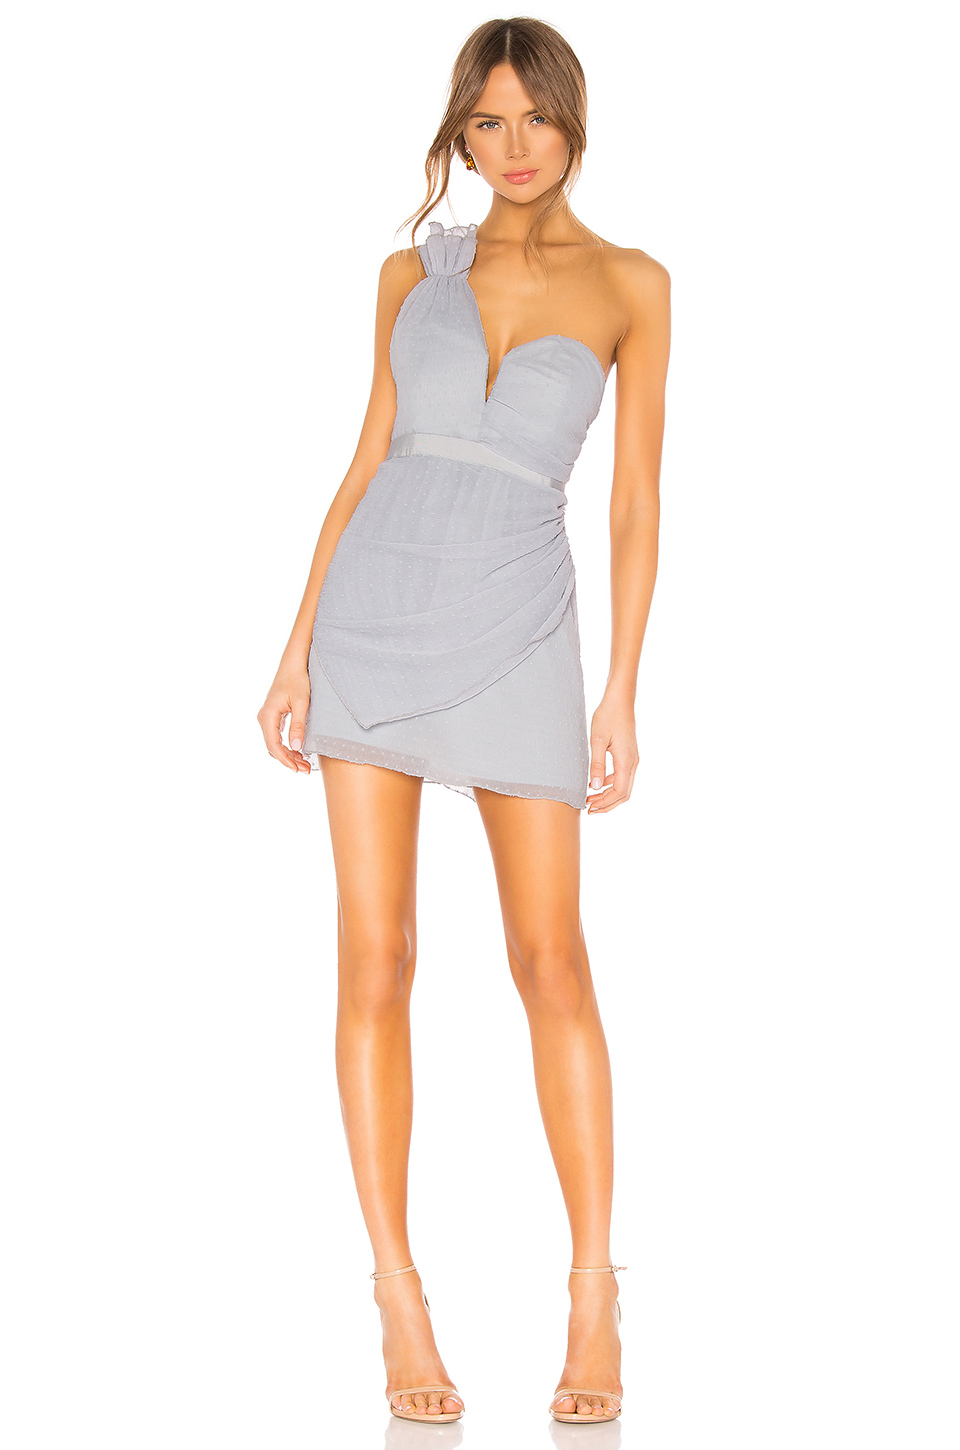 649d391393 Buy Original Alice McCall You re The One For Me Mini Dress at ...